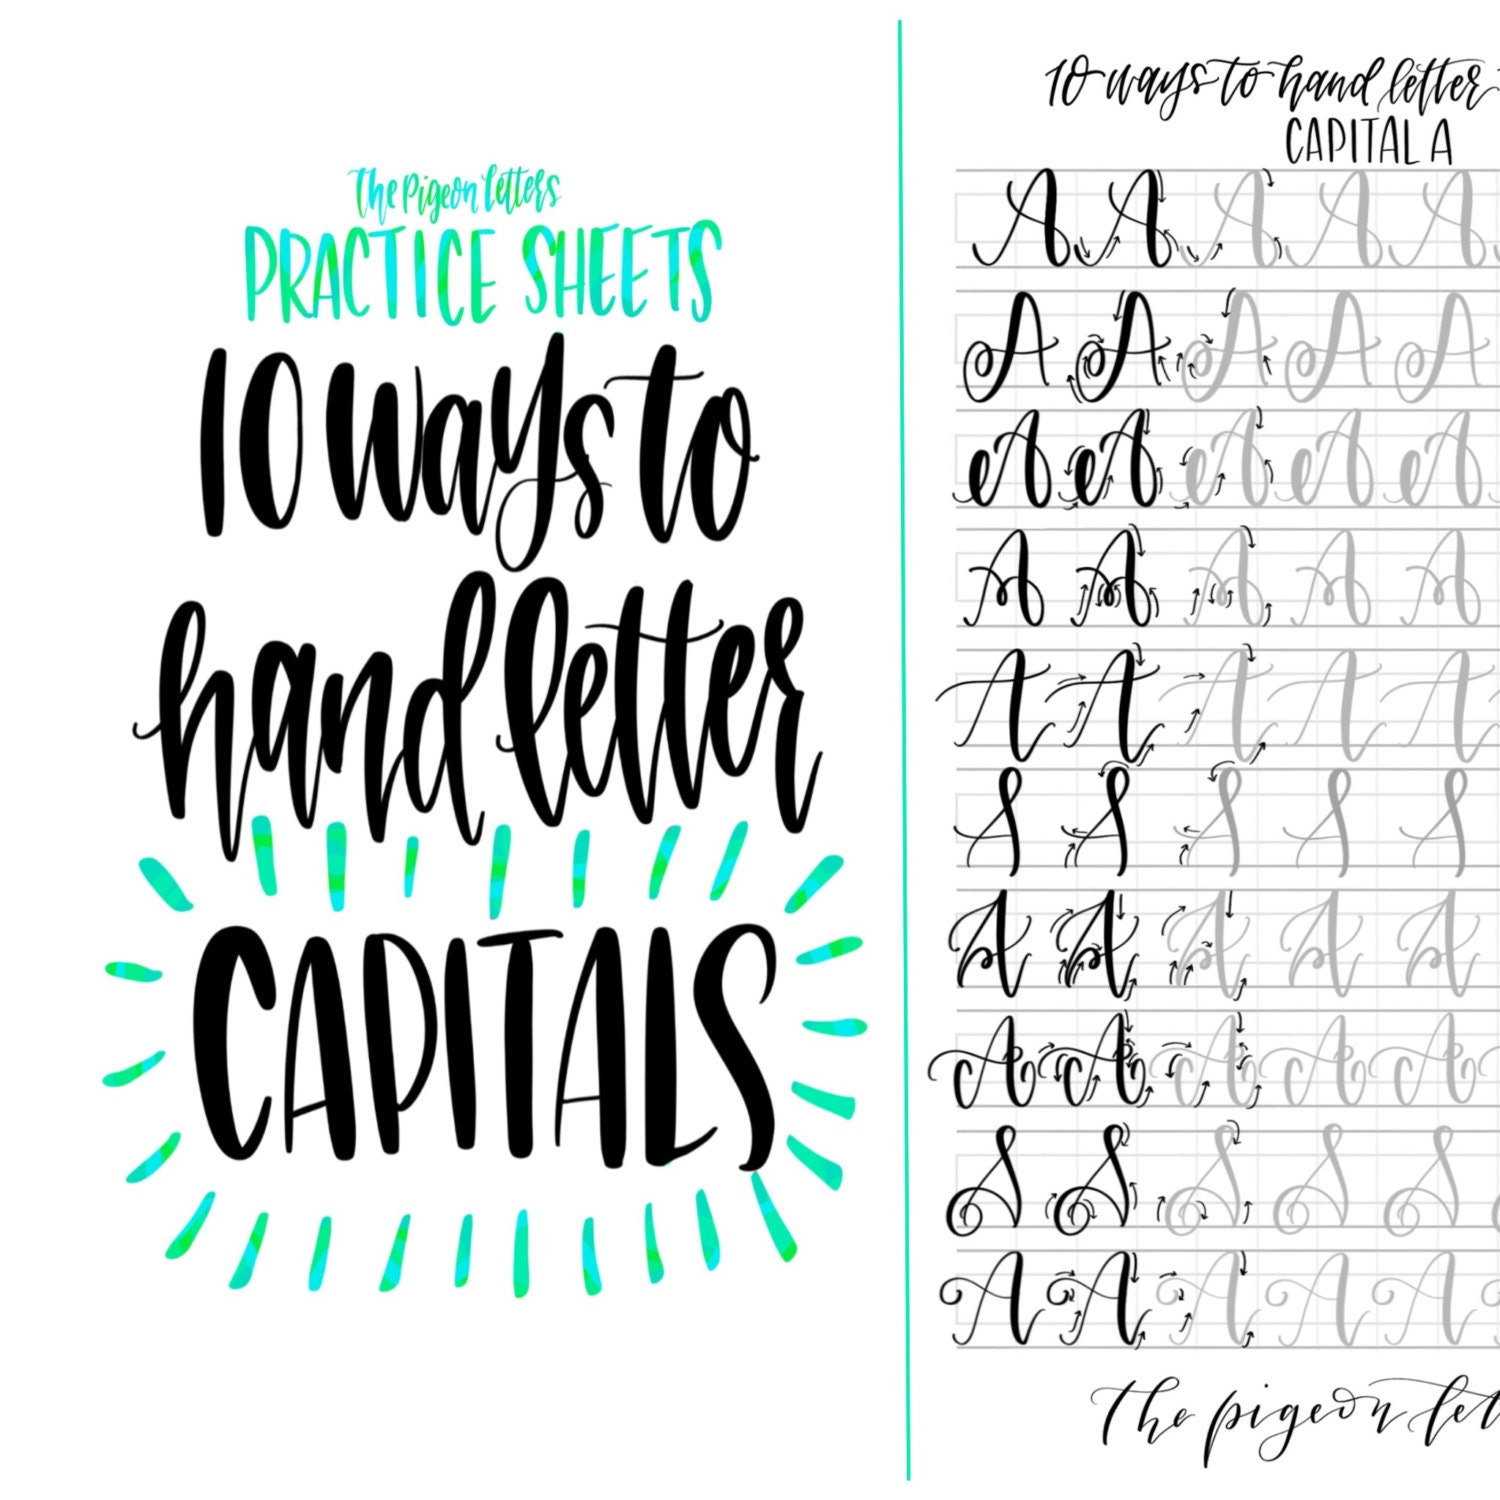 Hand lettering practice sheets ways to letter the